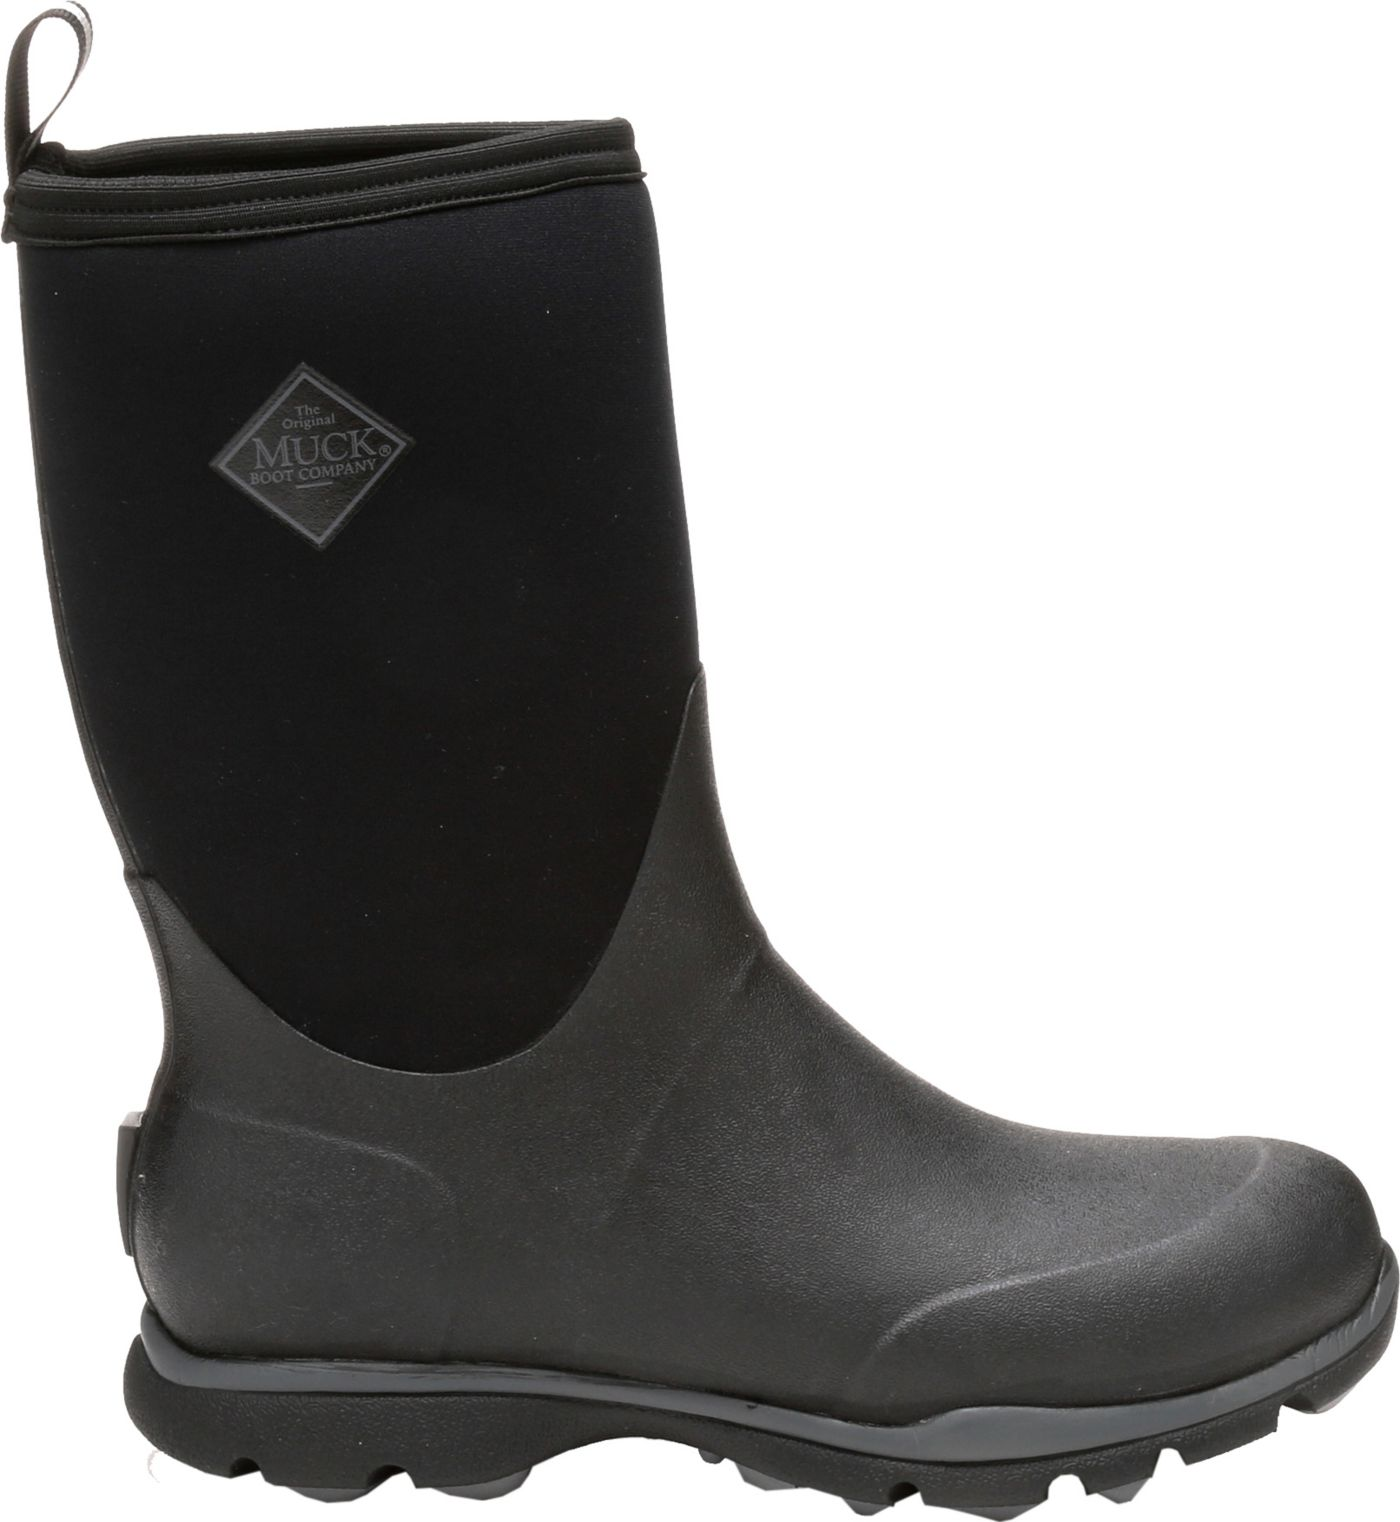 Muck Boots Men's Arctic Excursion Mid Waterproof Winter Boots